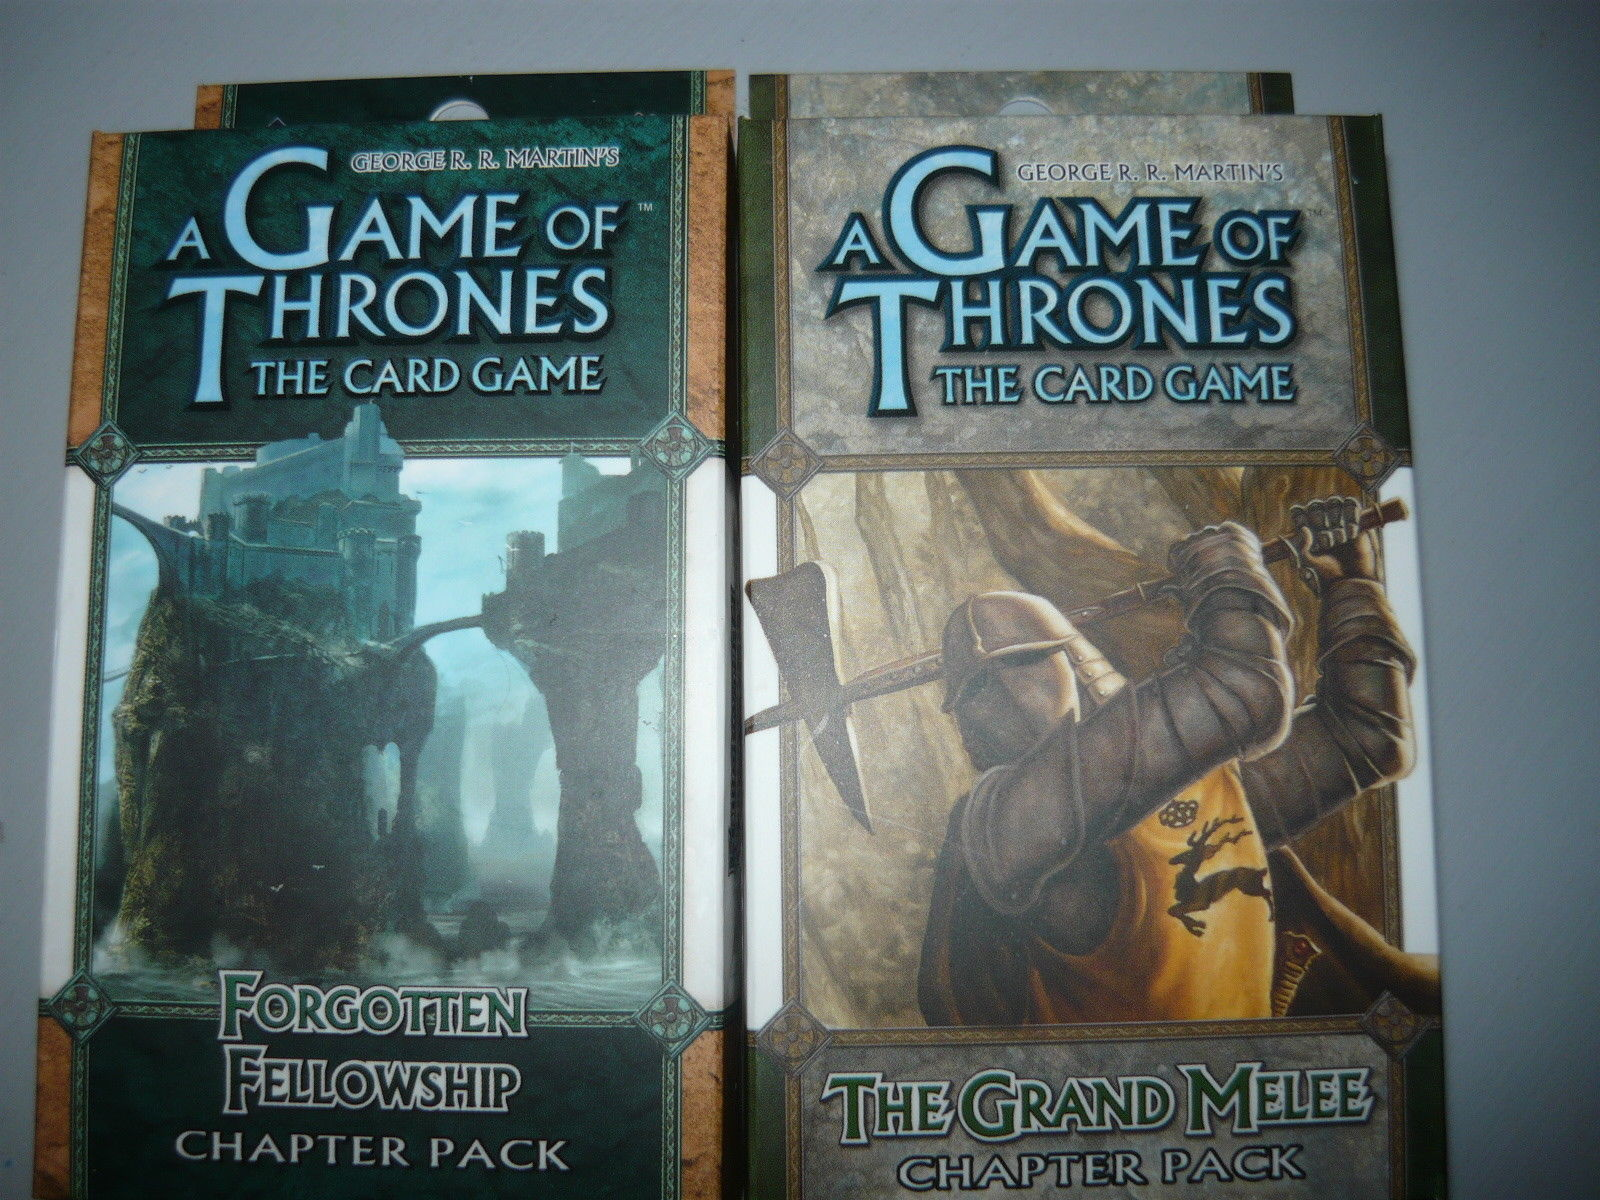 A Game of Thrones chapter pack lot of 2 forgotten fellowship the grand melee